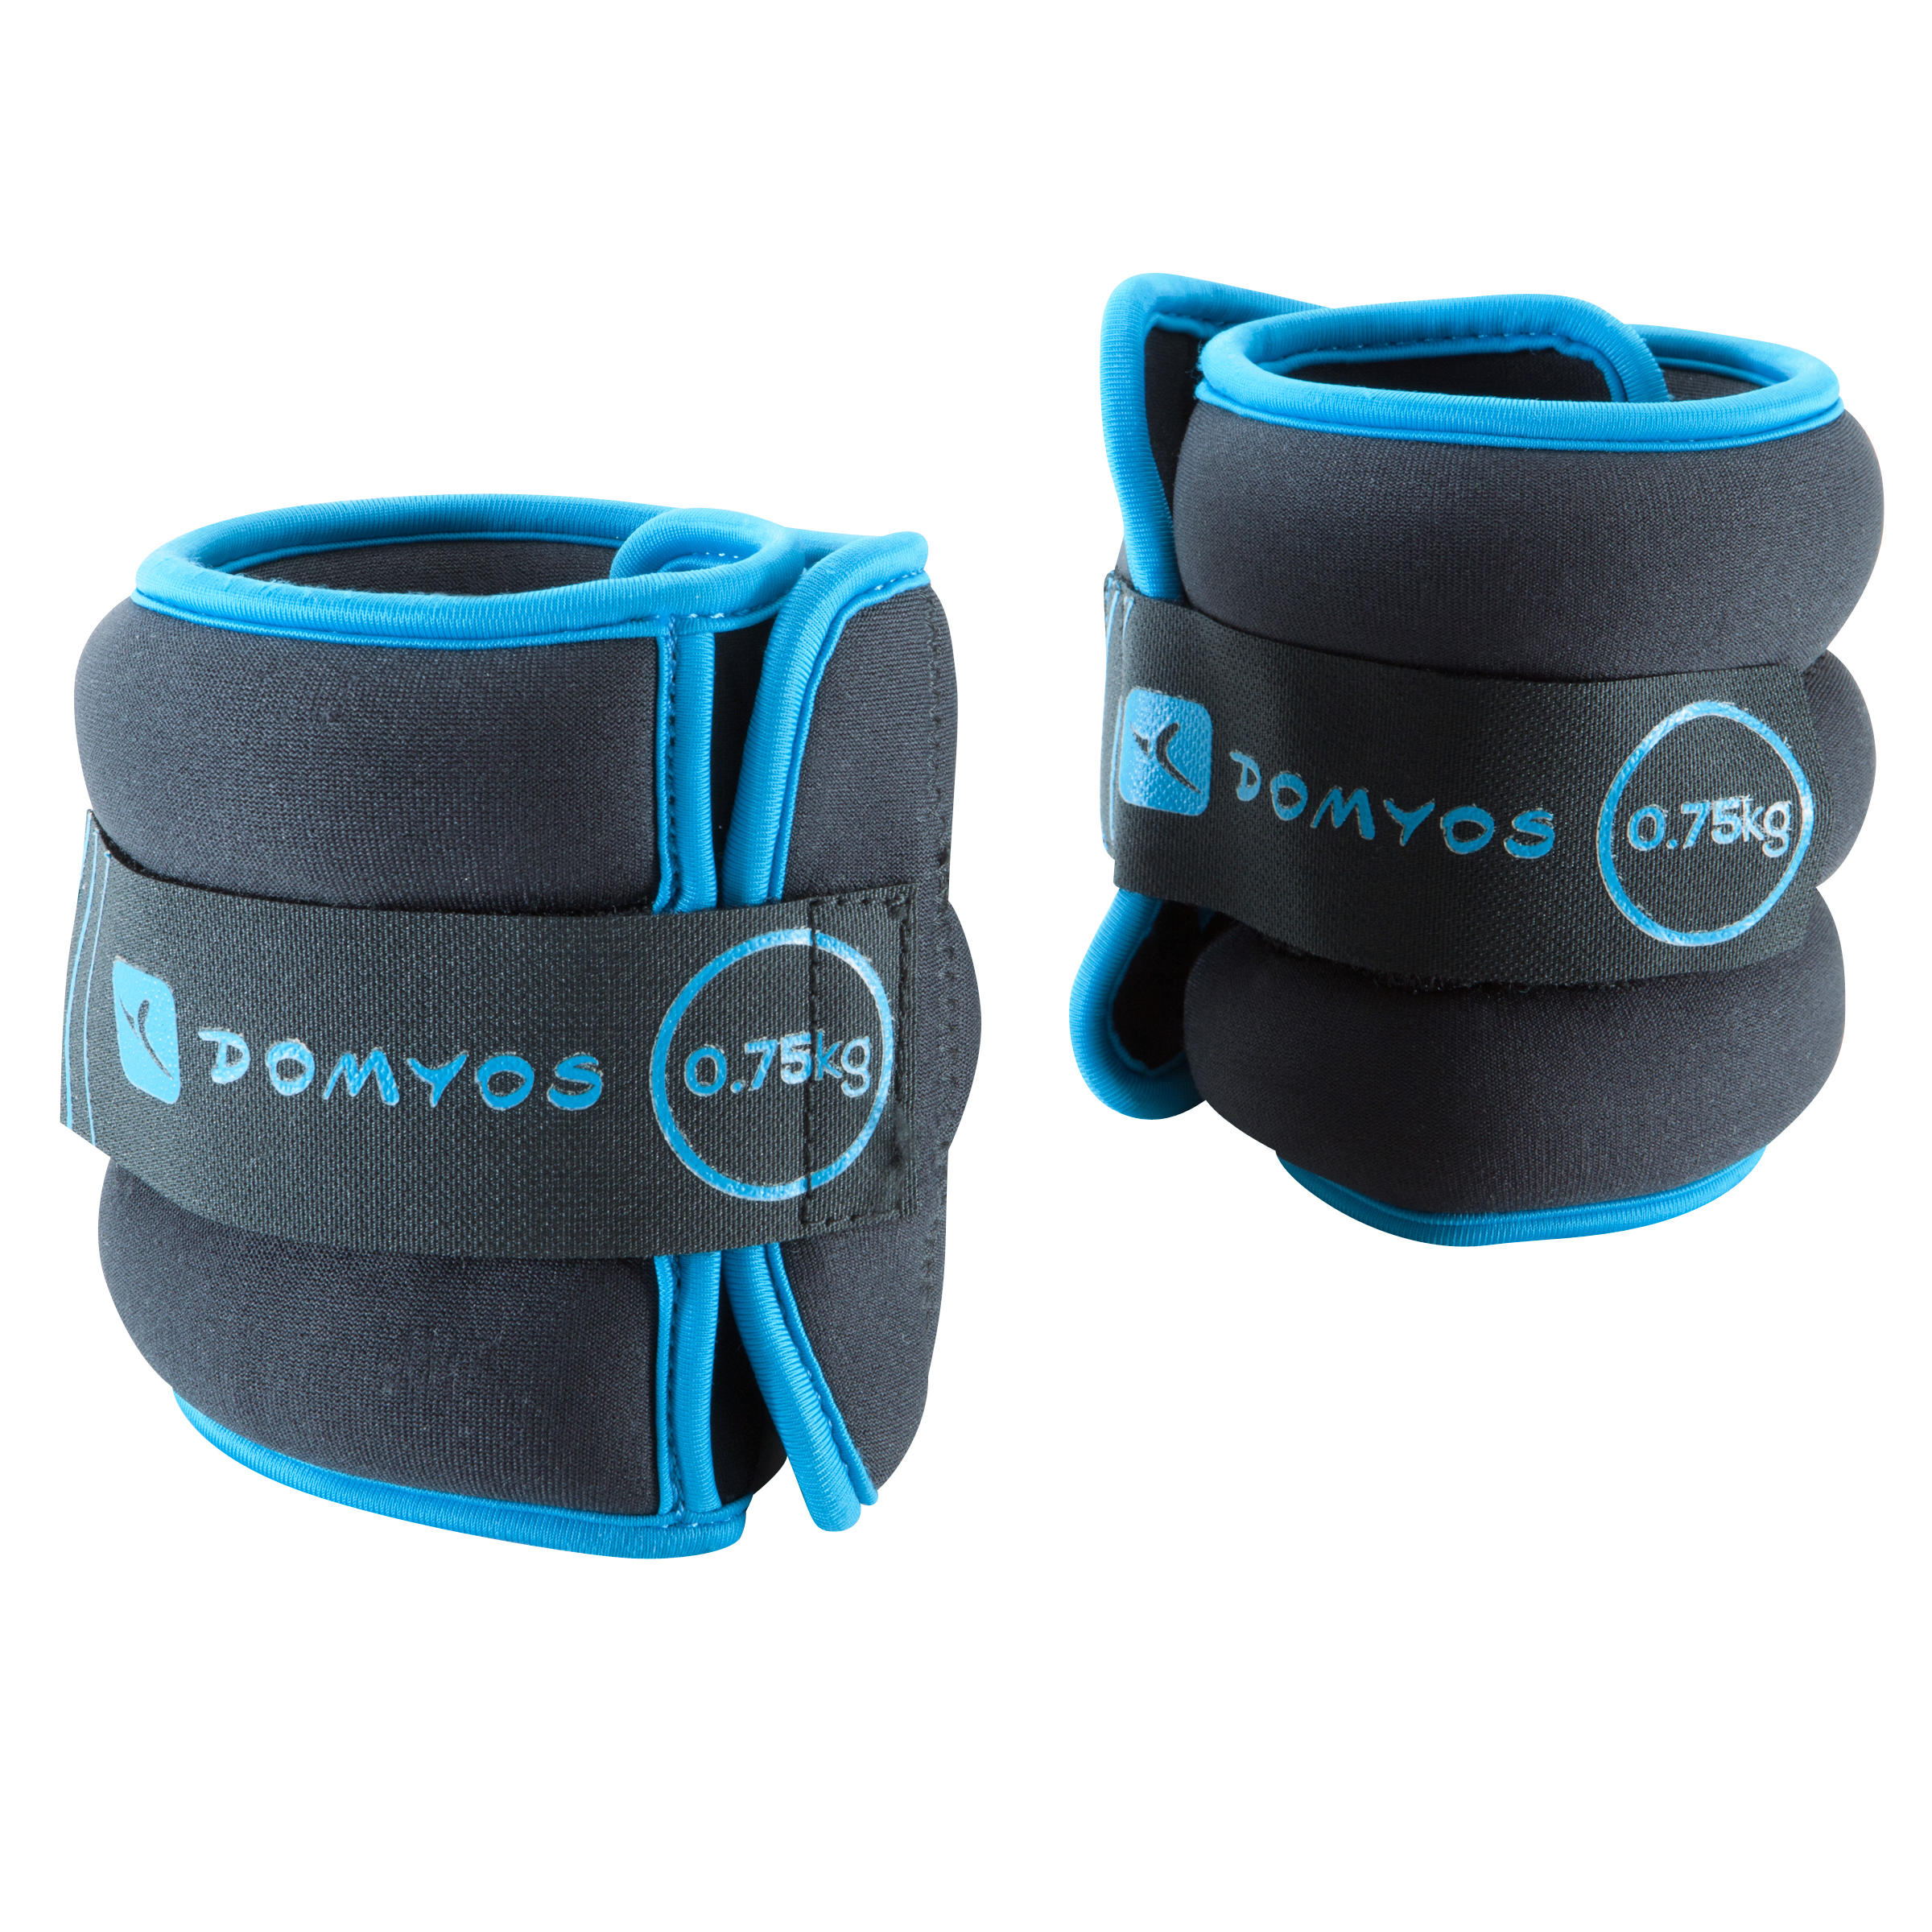 0.75 kg Flexible Ankle and Wrist Weights